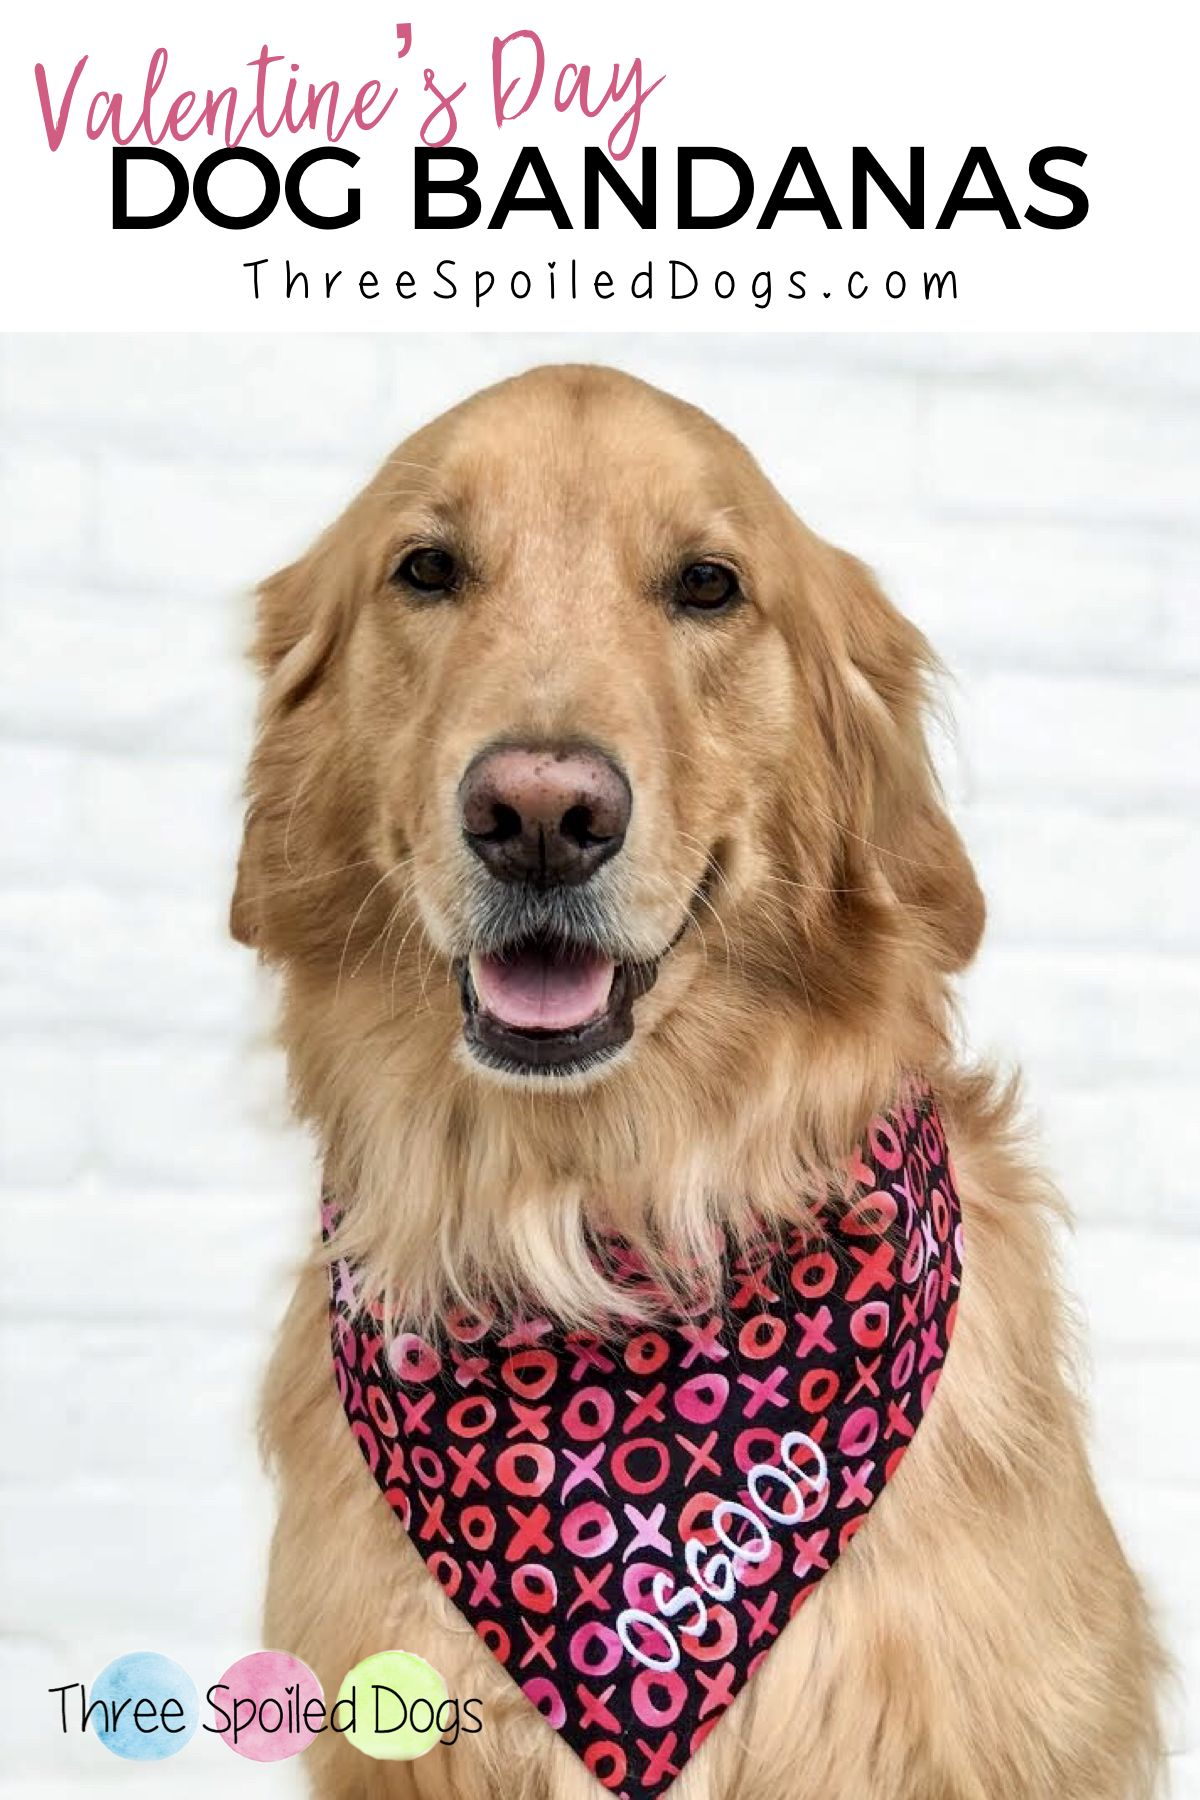 Personalized Pet Accessories Dog Bandanas Dog Beds Best Custom Puppy Dog Gifts By Three Spoiled Dogs